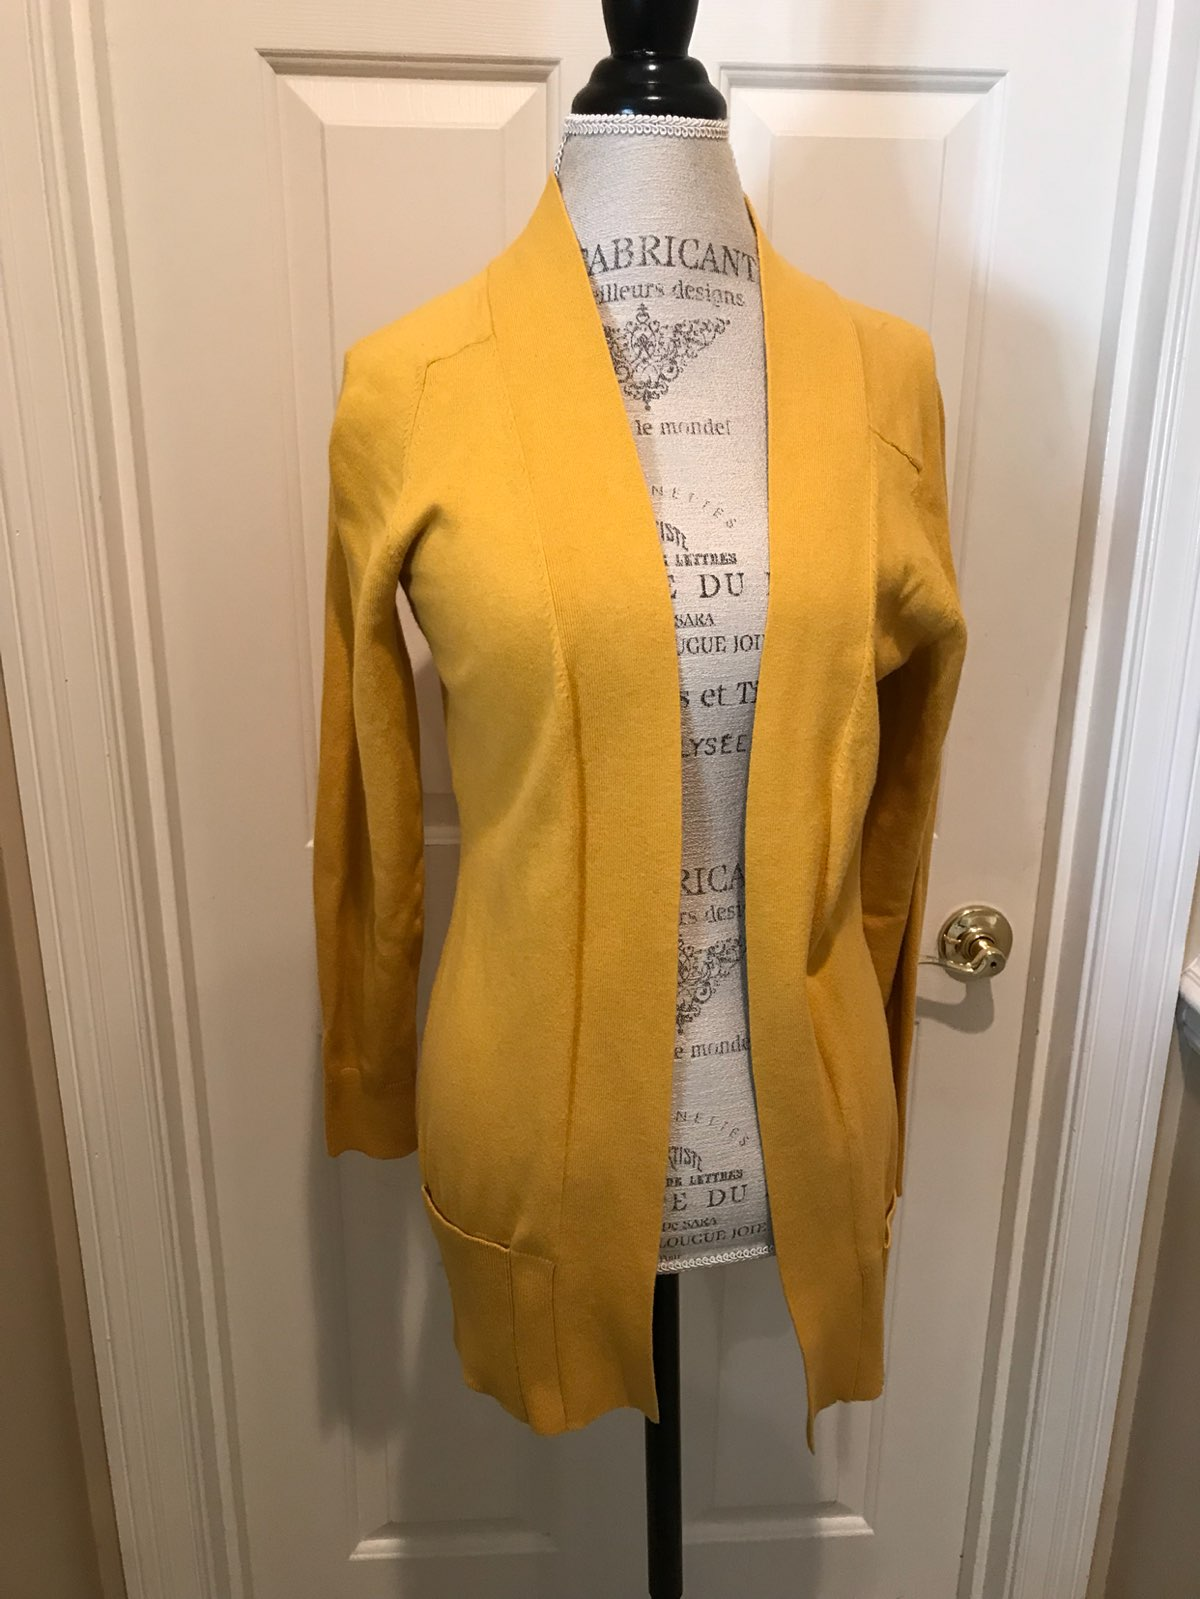 Yellow Cardigan From Francesca's - Mercari: BUY & SELL THINGS YOU LOVE